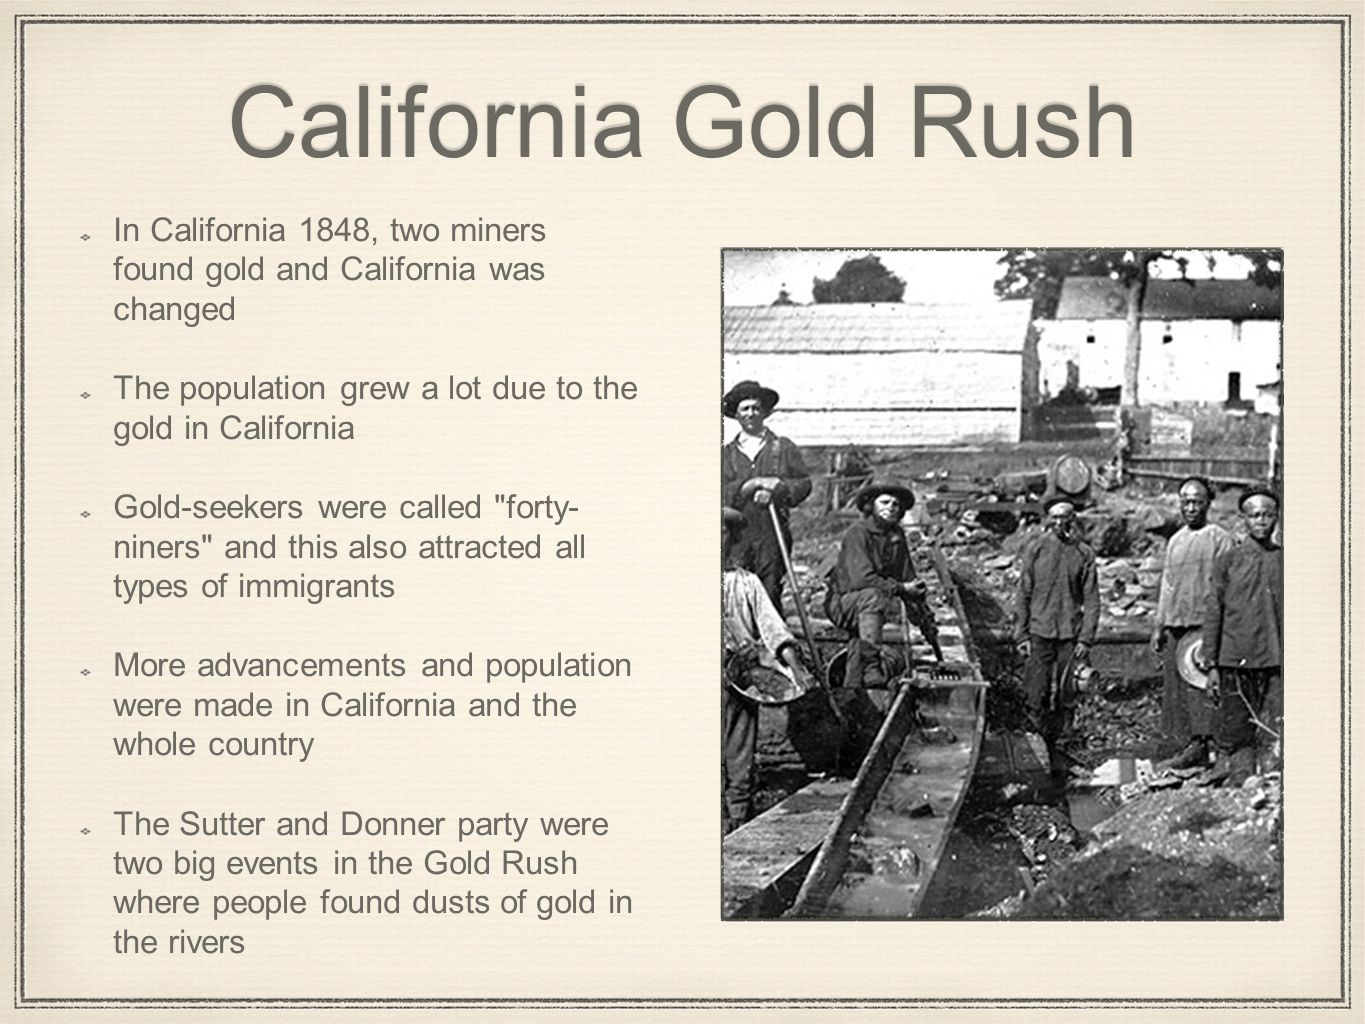 california gold rush Located throughout california, these attractions give a glimpse of california's mining and gold rush era history.